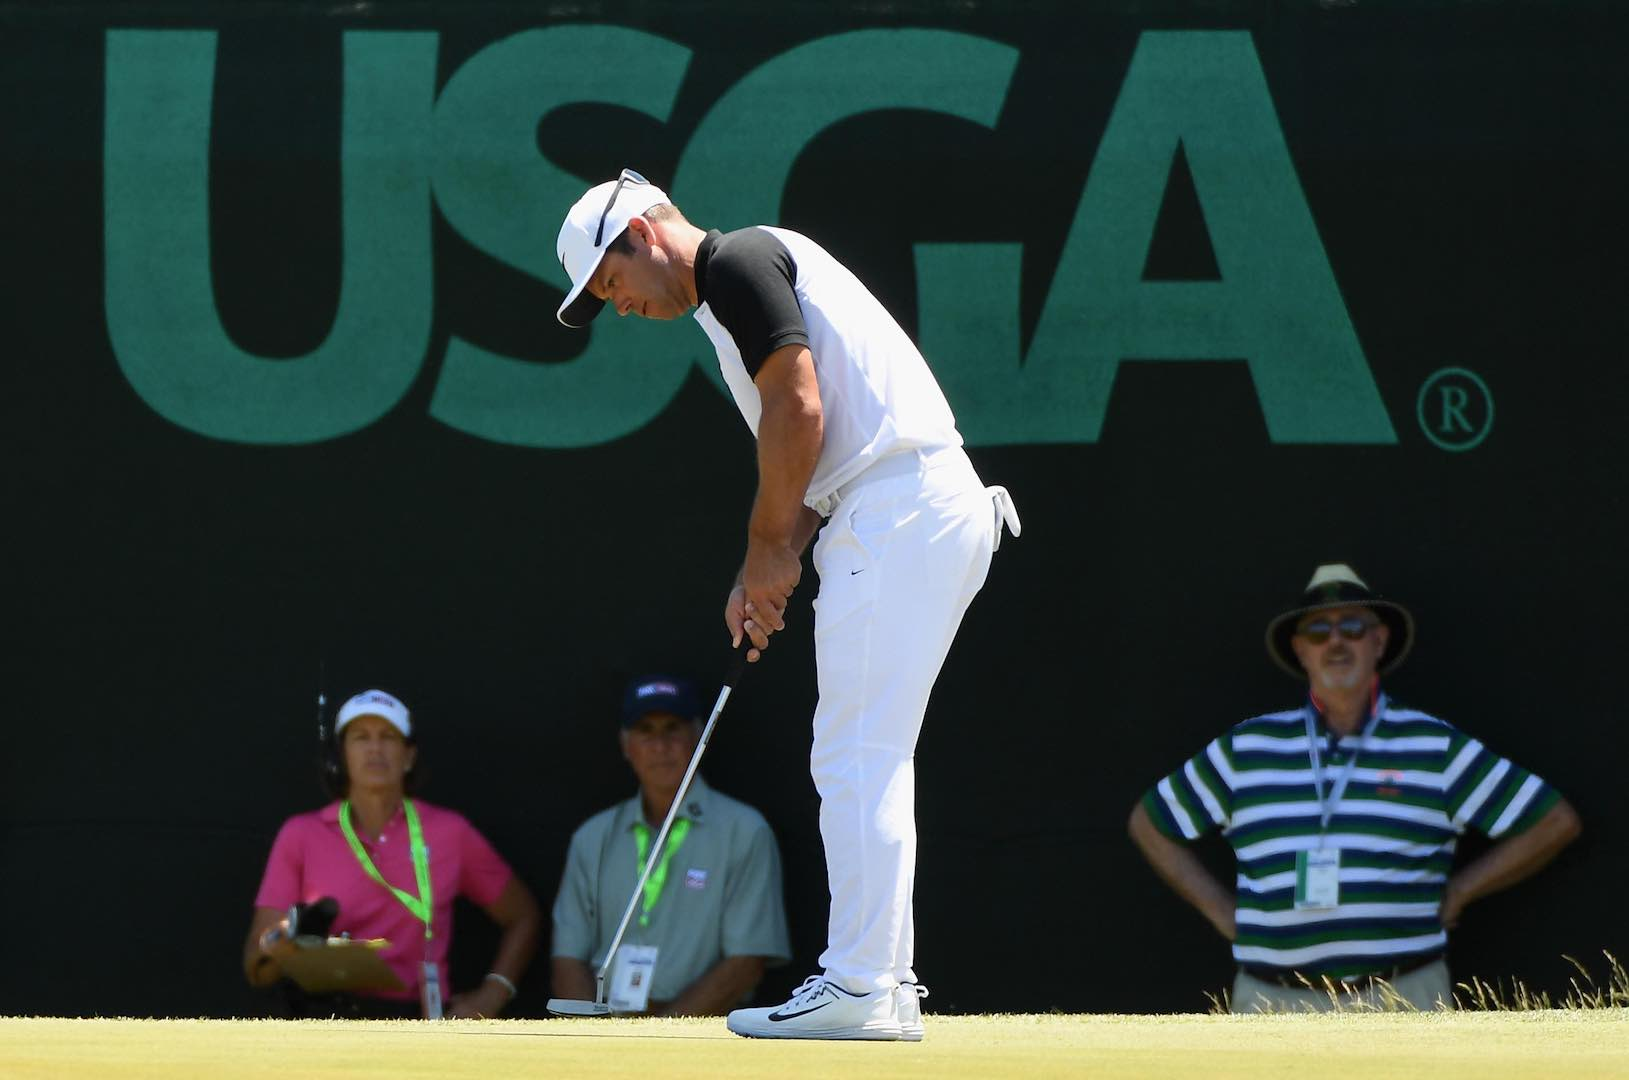 Casey & Fleetwood in 4–way lead at US Open